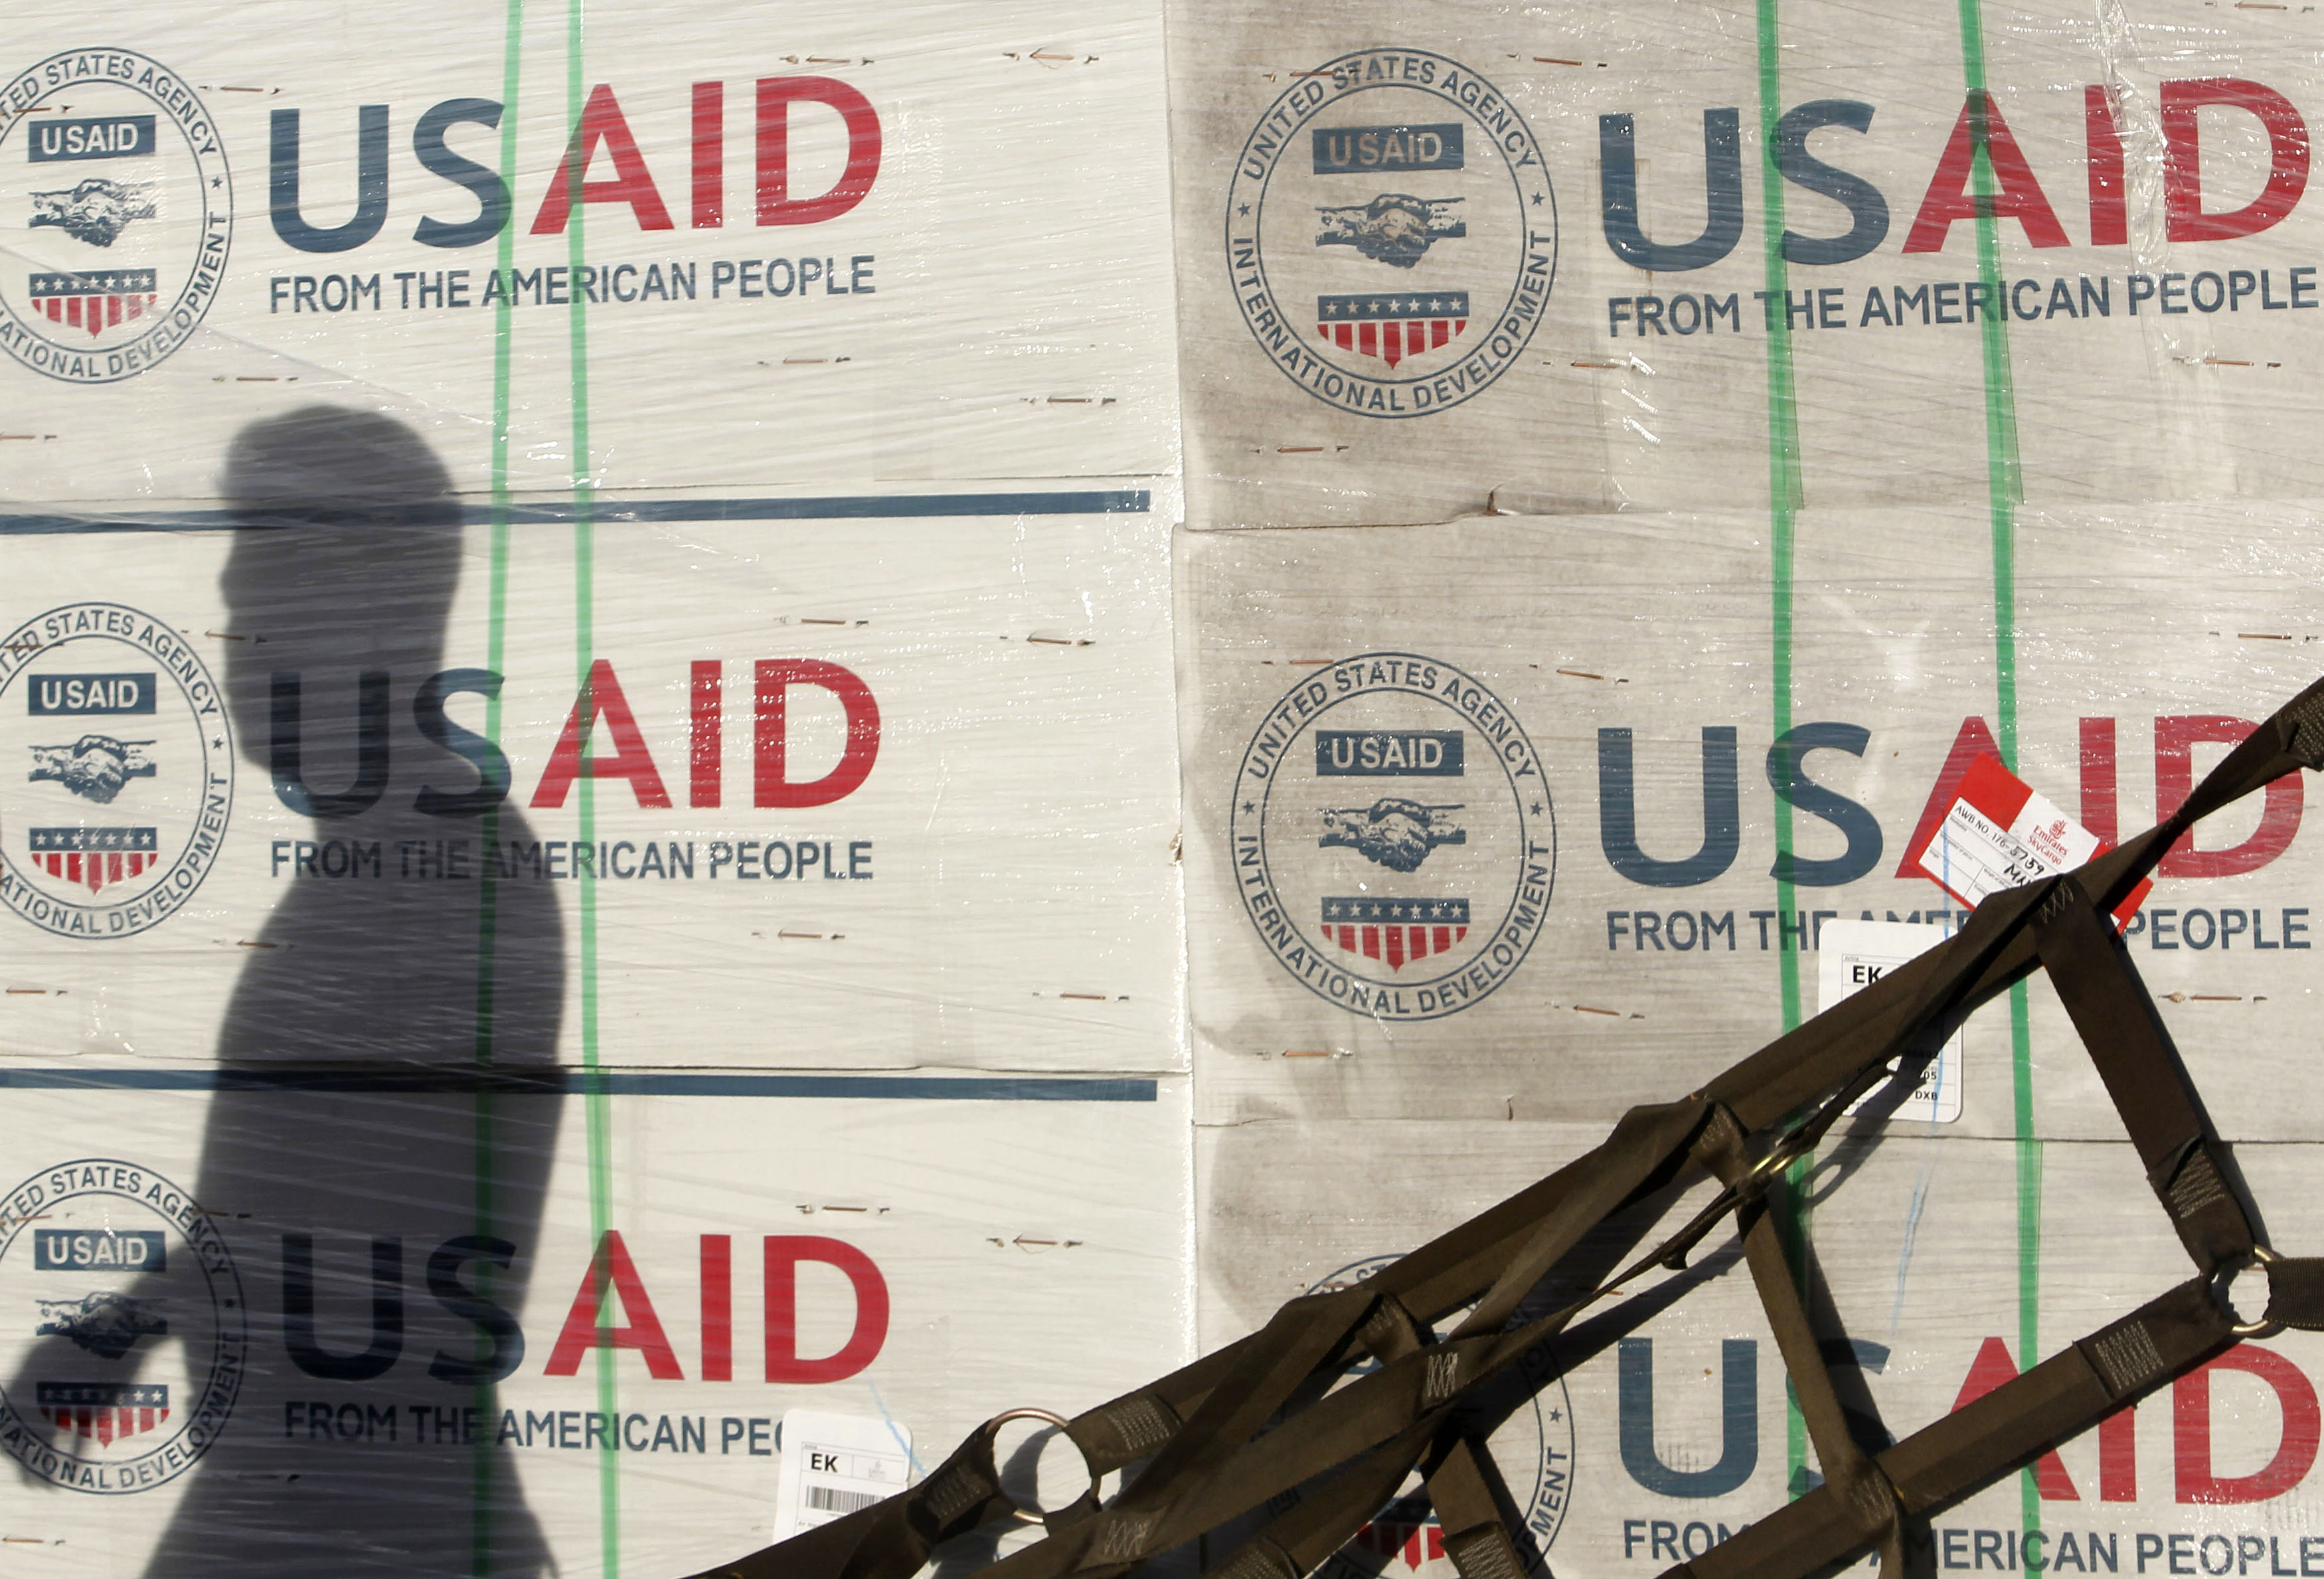 Boxes of relief items from USAID arrive for victims of super typhoon Haiyan, in Manila